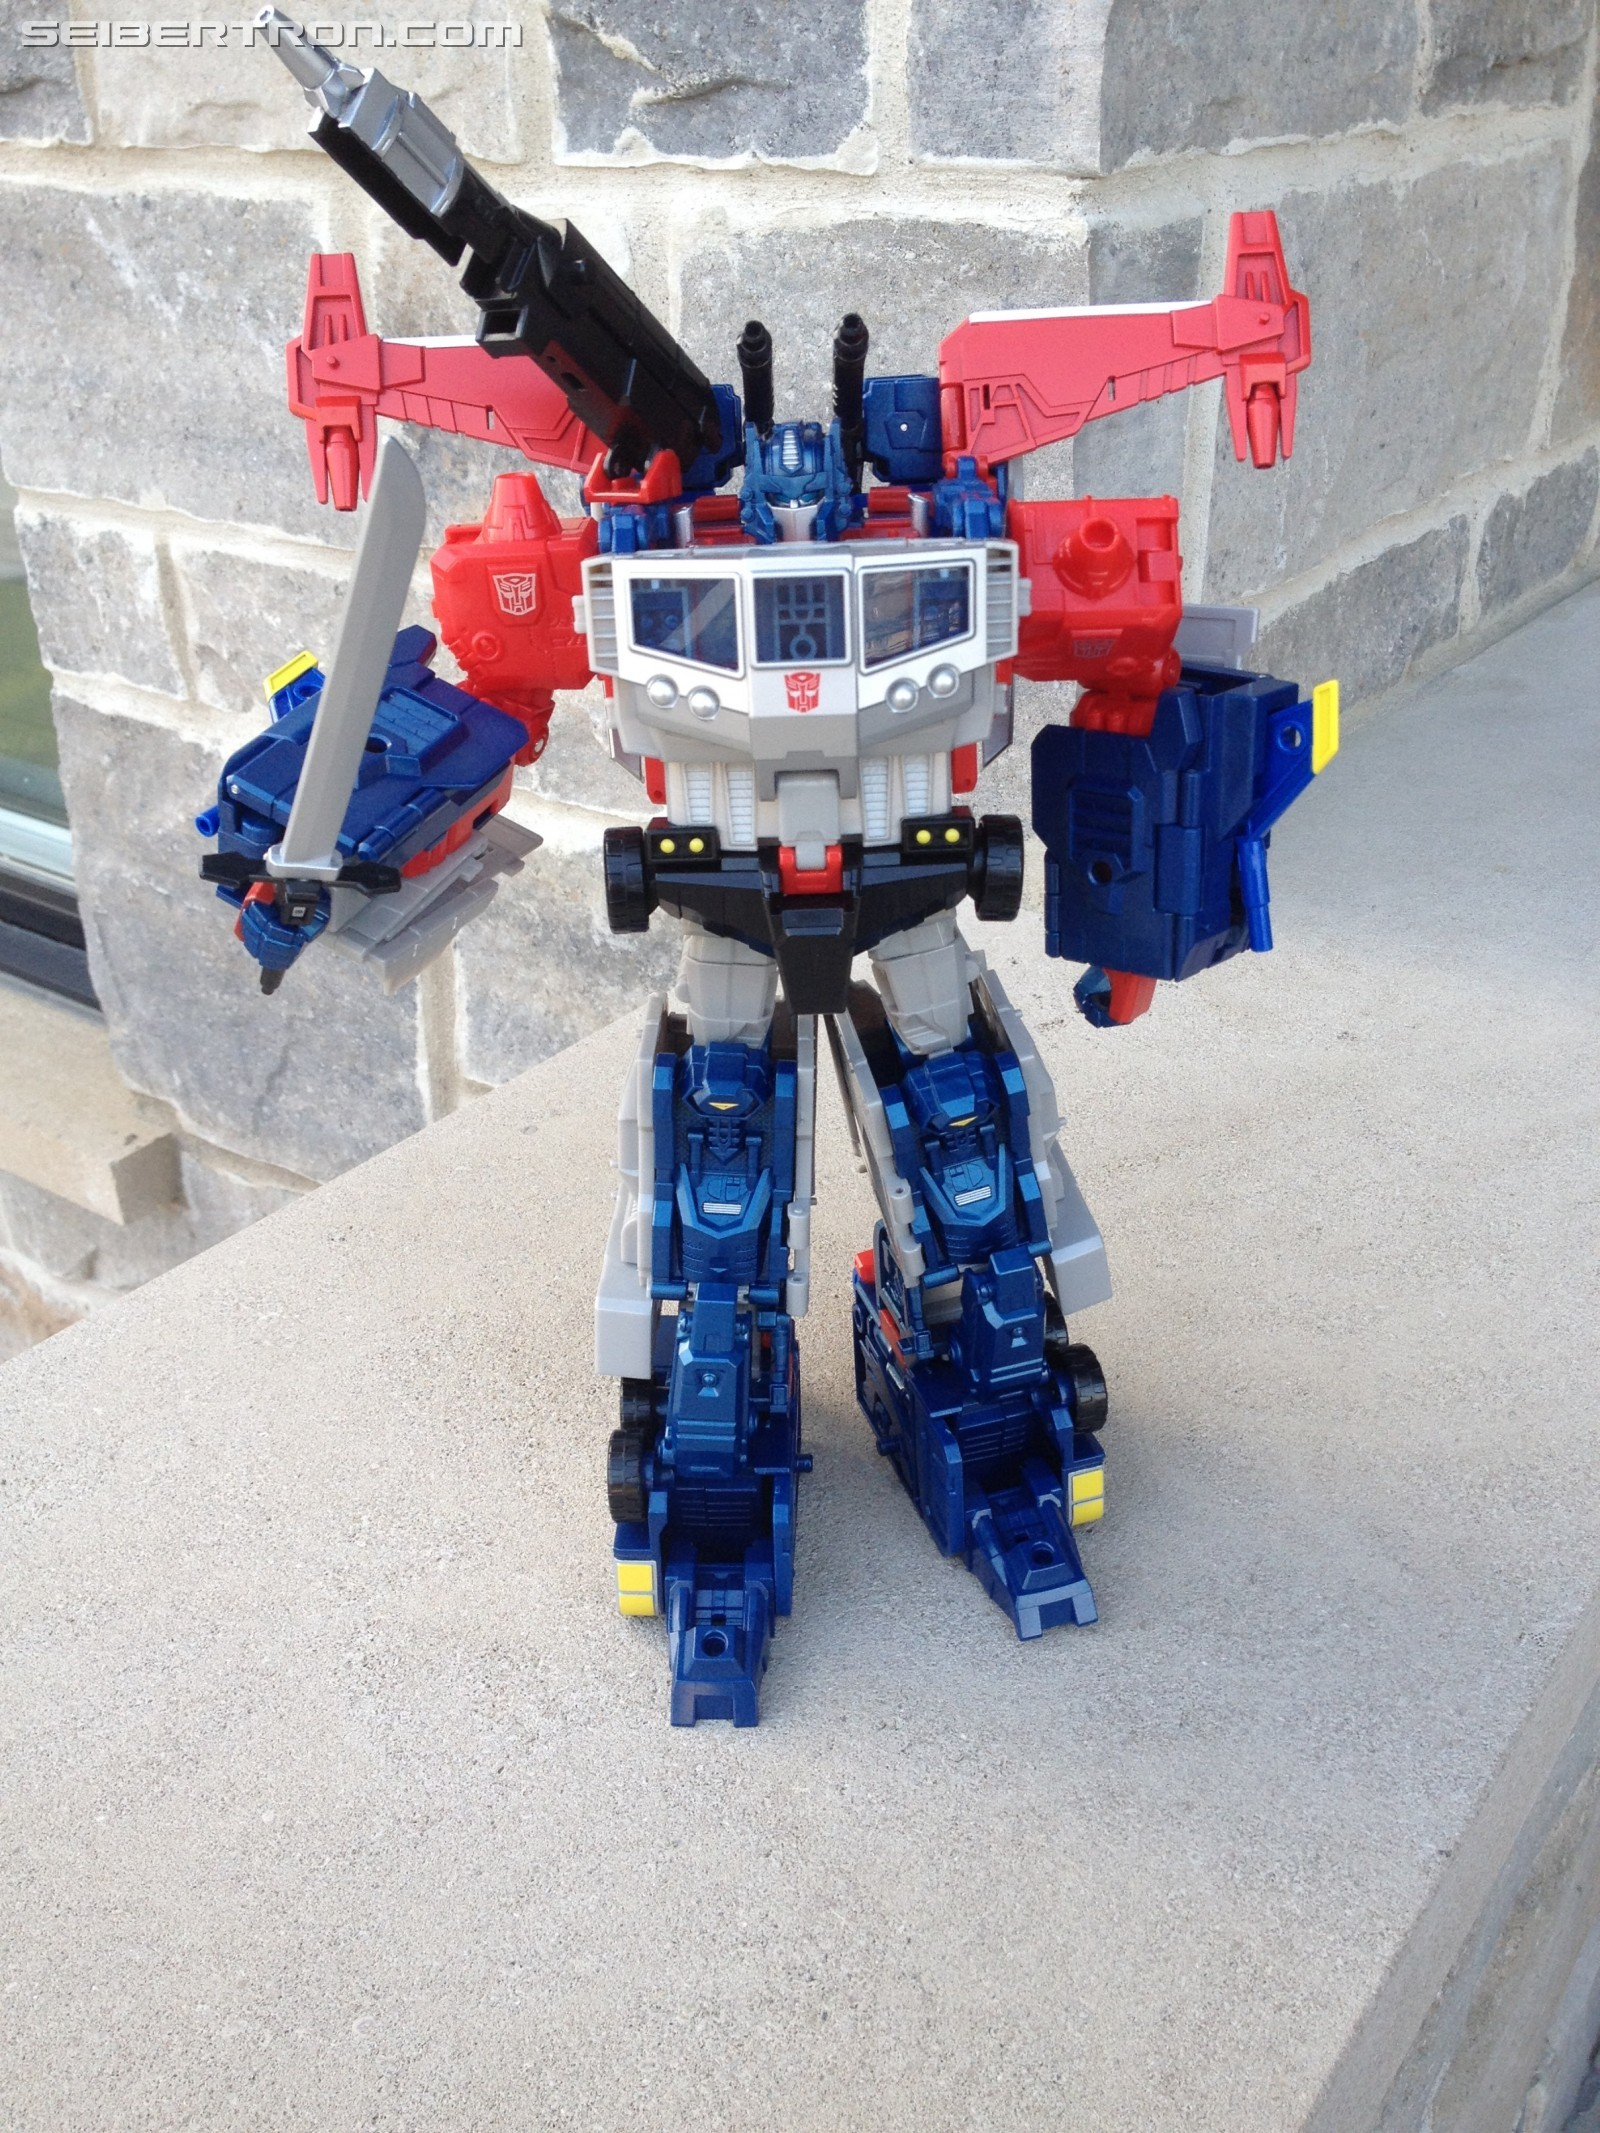 Transformers News: First Images of Hasbro Transformers Titans ReturnMagnus Prime Combined with Takara Legends Godbomber